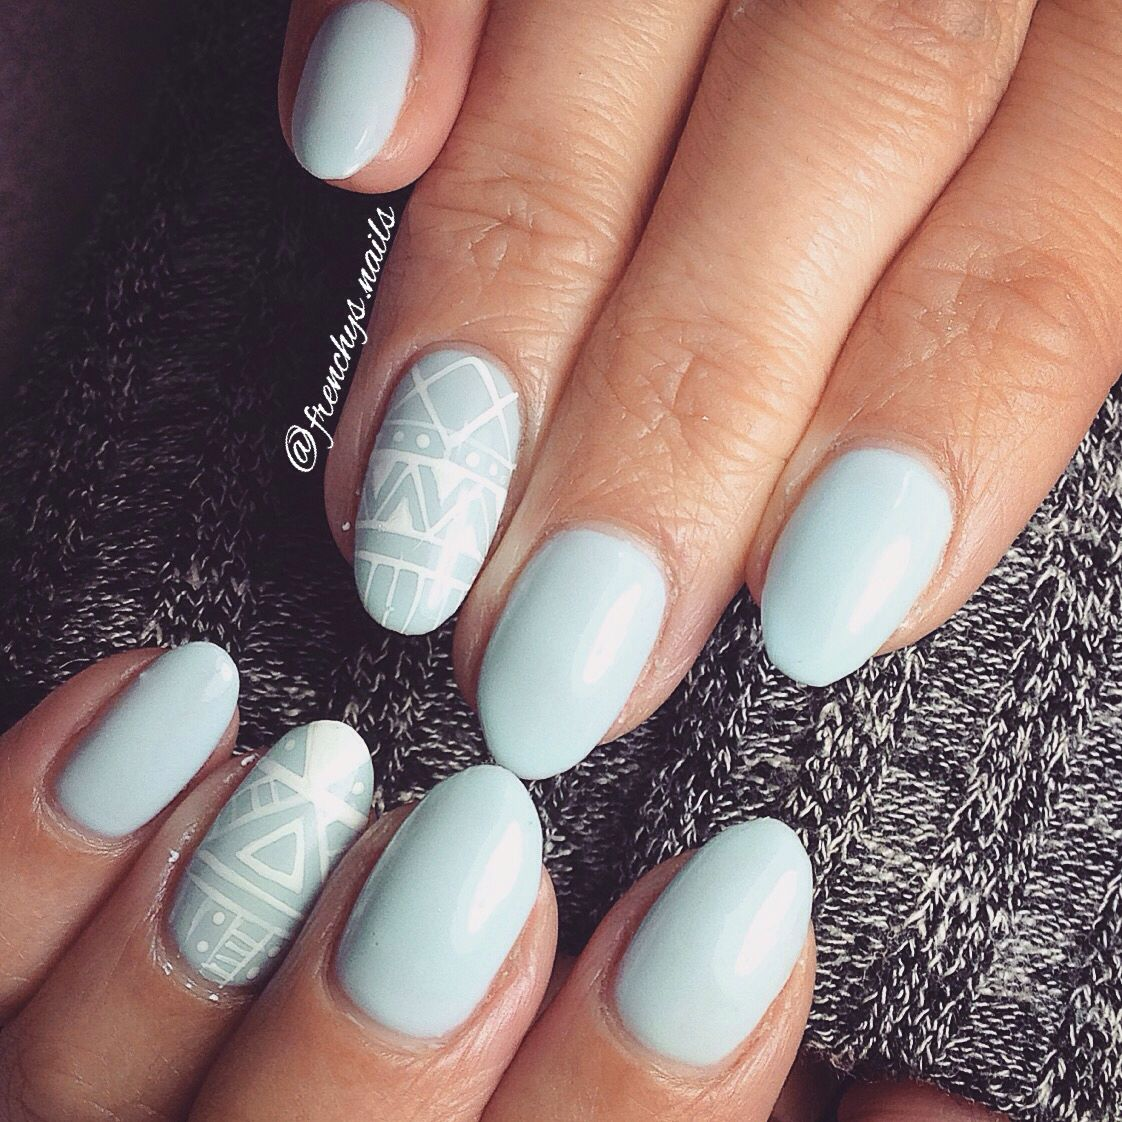 Pastel baby blue nails with tribal design